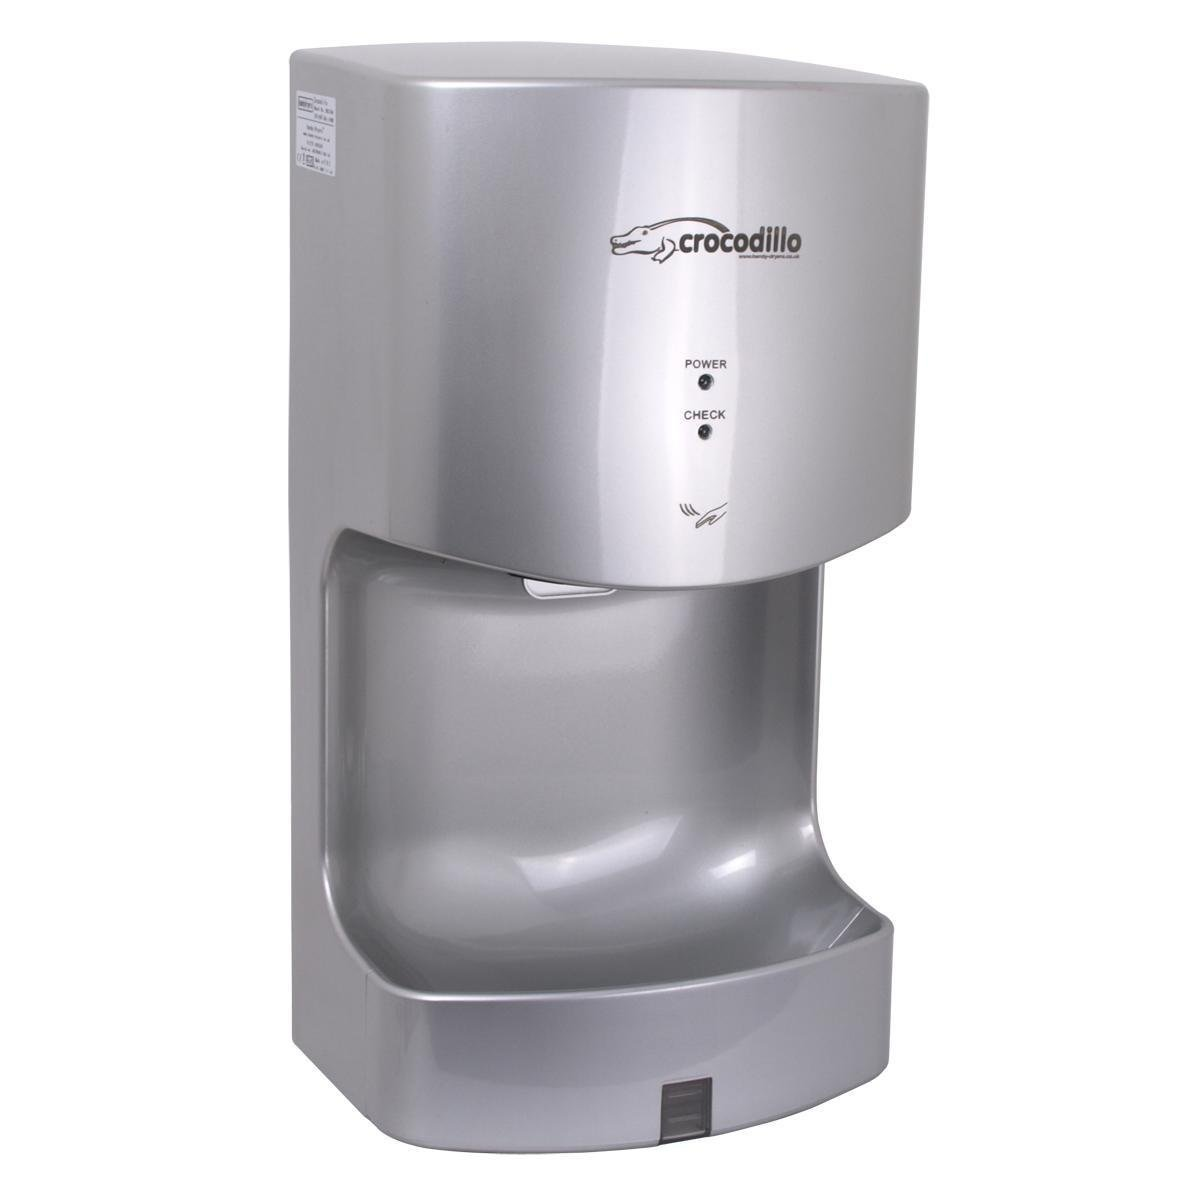 Handy Dryers Crocodillo T2 Hand Dryer, Silver Heat Outdoors 5060405130066